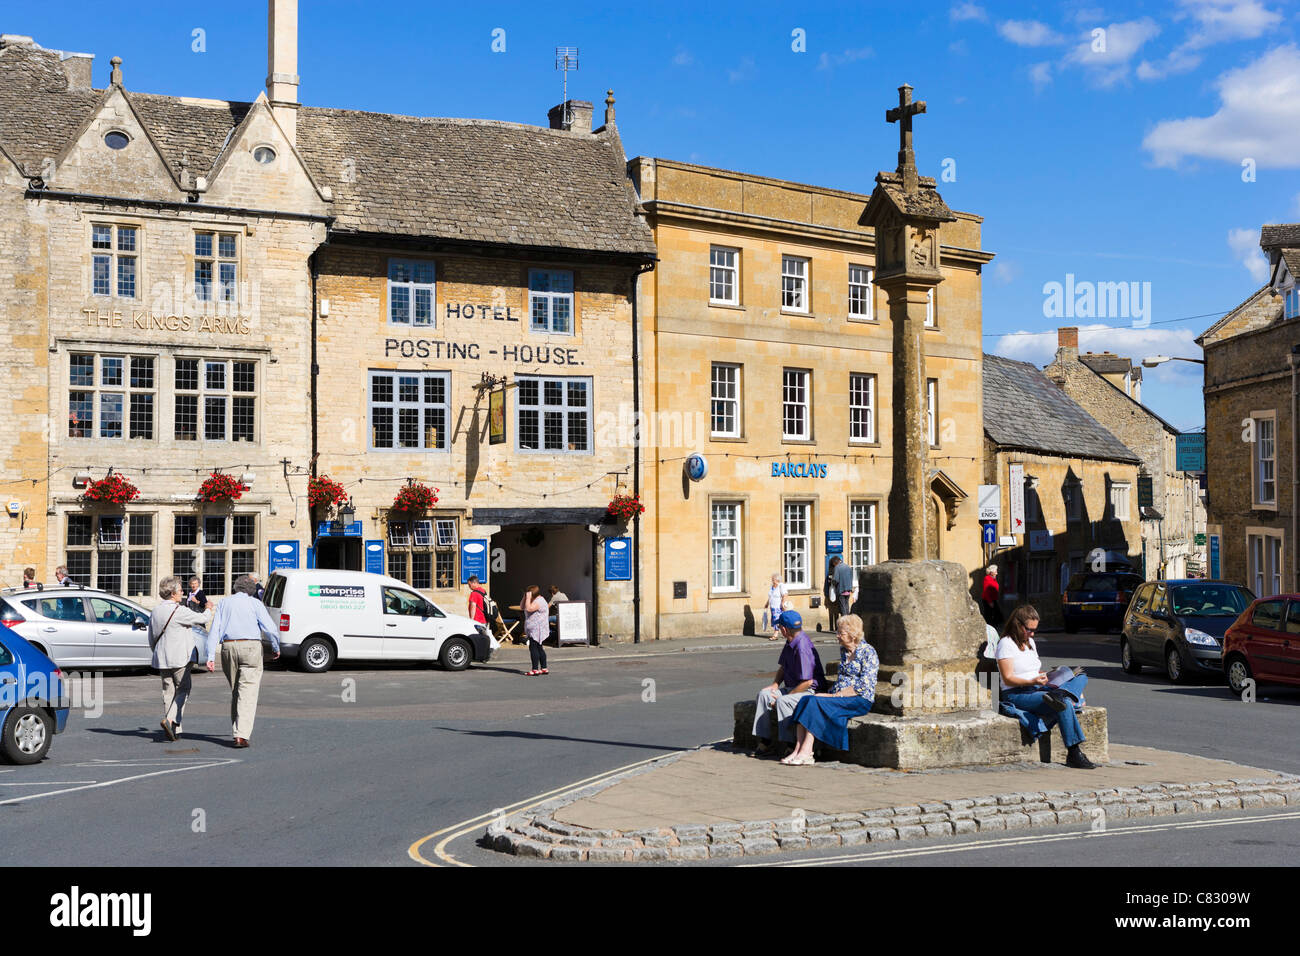 Market Square looking towards the Hotel Posting House and the Kings Arms pub, Stow-on-the-Wold, Gloucestershire, Stock Photo